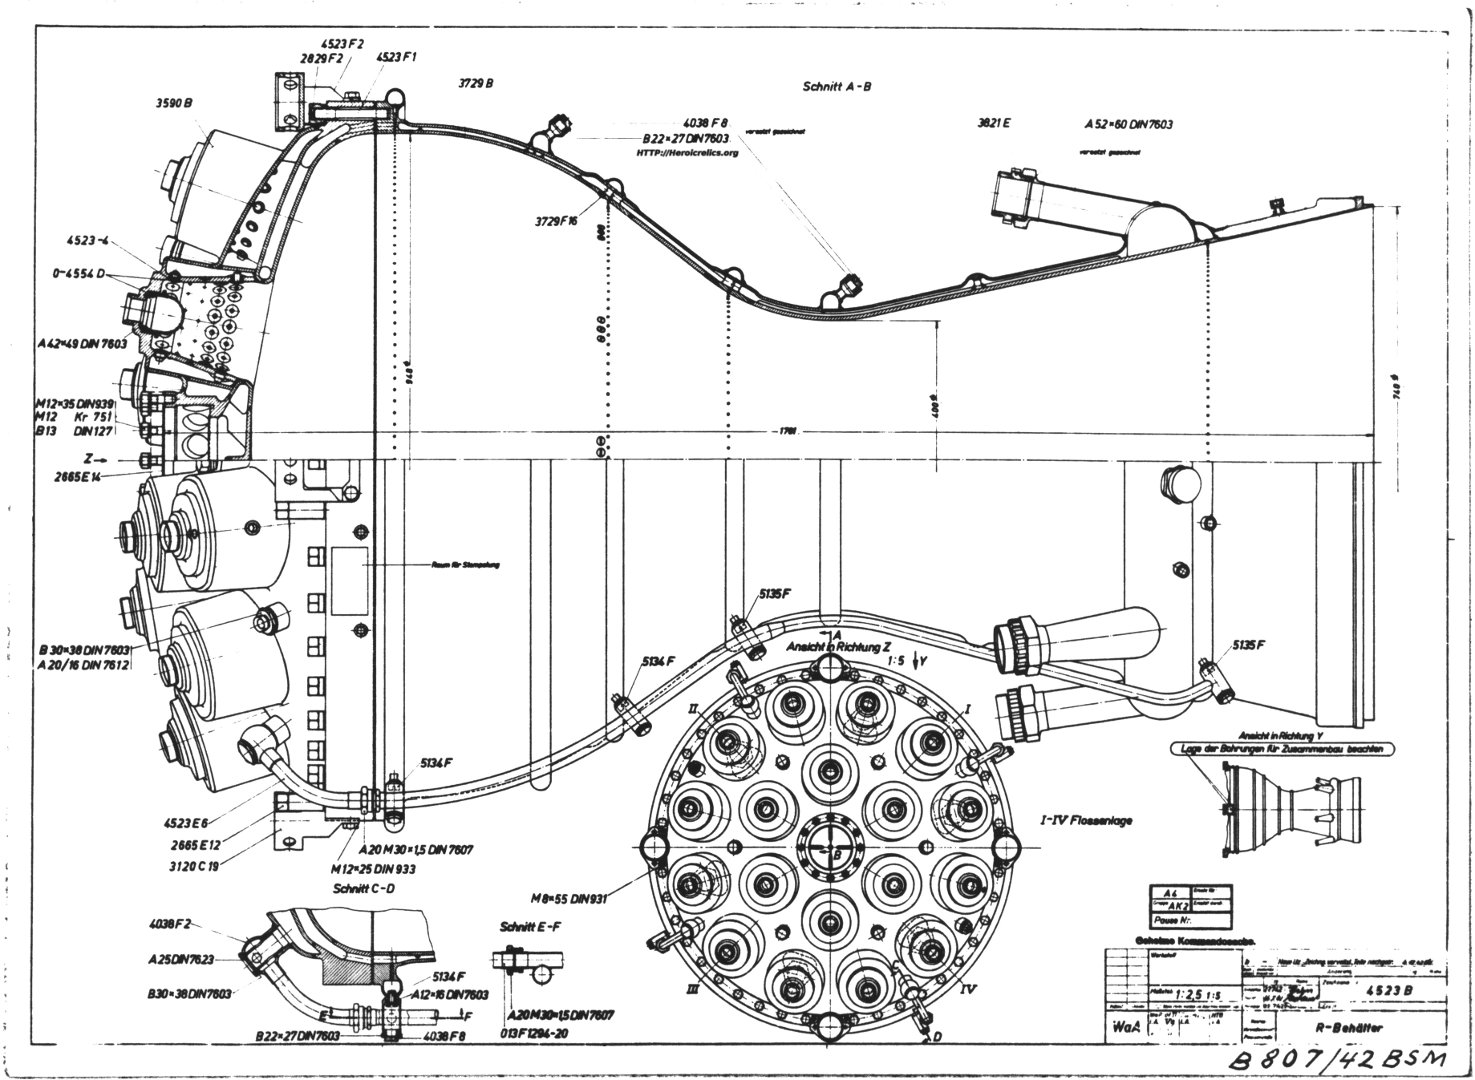 TM 55 4920 384 13 P0219 likewise 374mm Timing Firing Order 95 Honda Accord Cyl moreover Obsolete Engines 101 The Mythical V4 moreover Bolens Snowblower Parts Manual Wiring Diagrams besides Case 430 Skid Steer Wiring Diagram Case Skid Steer Charging System. on wisconsin engine diagram